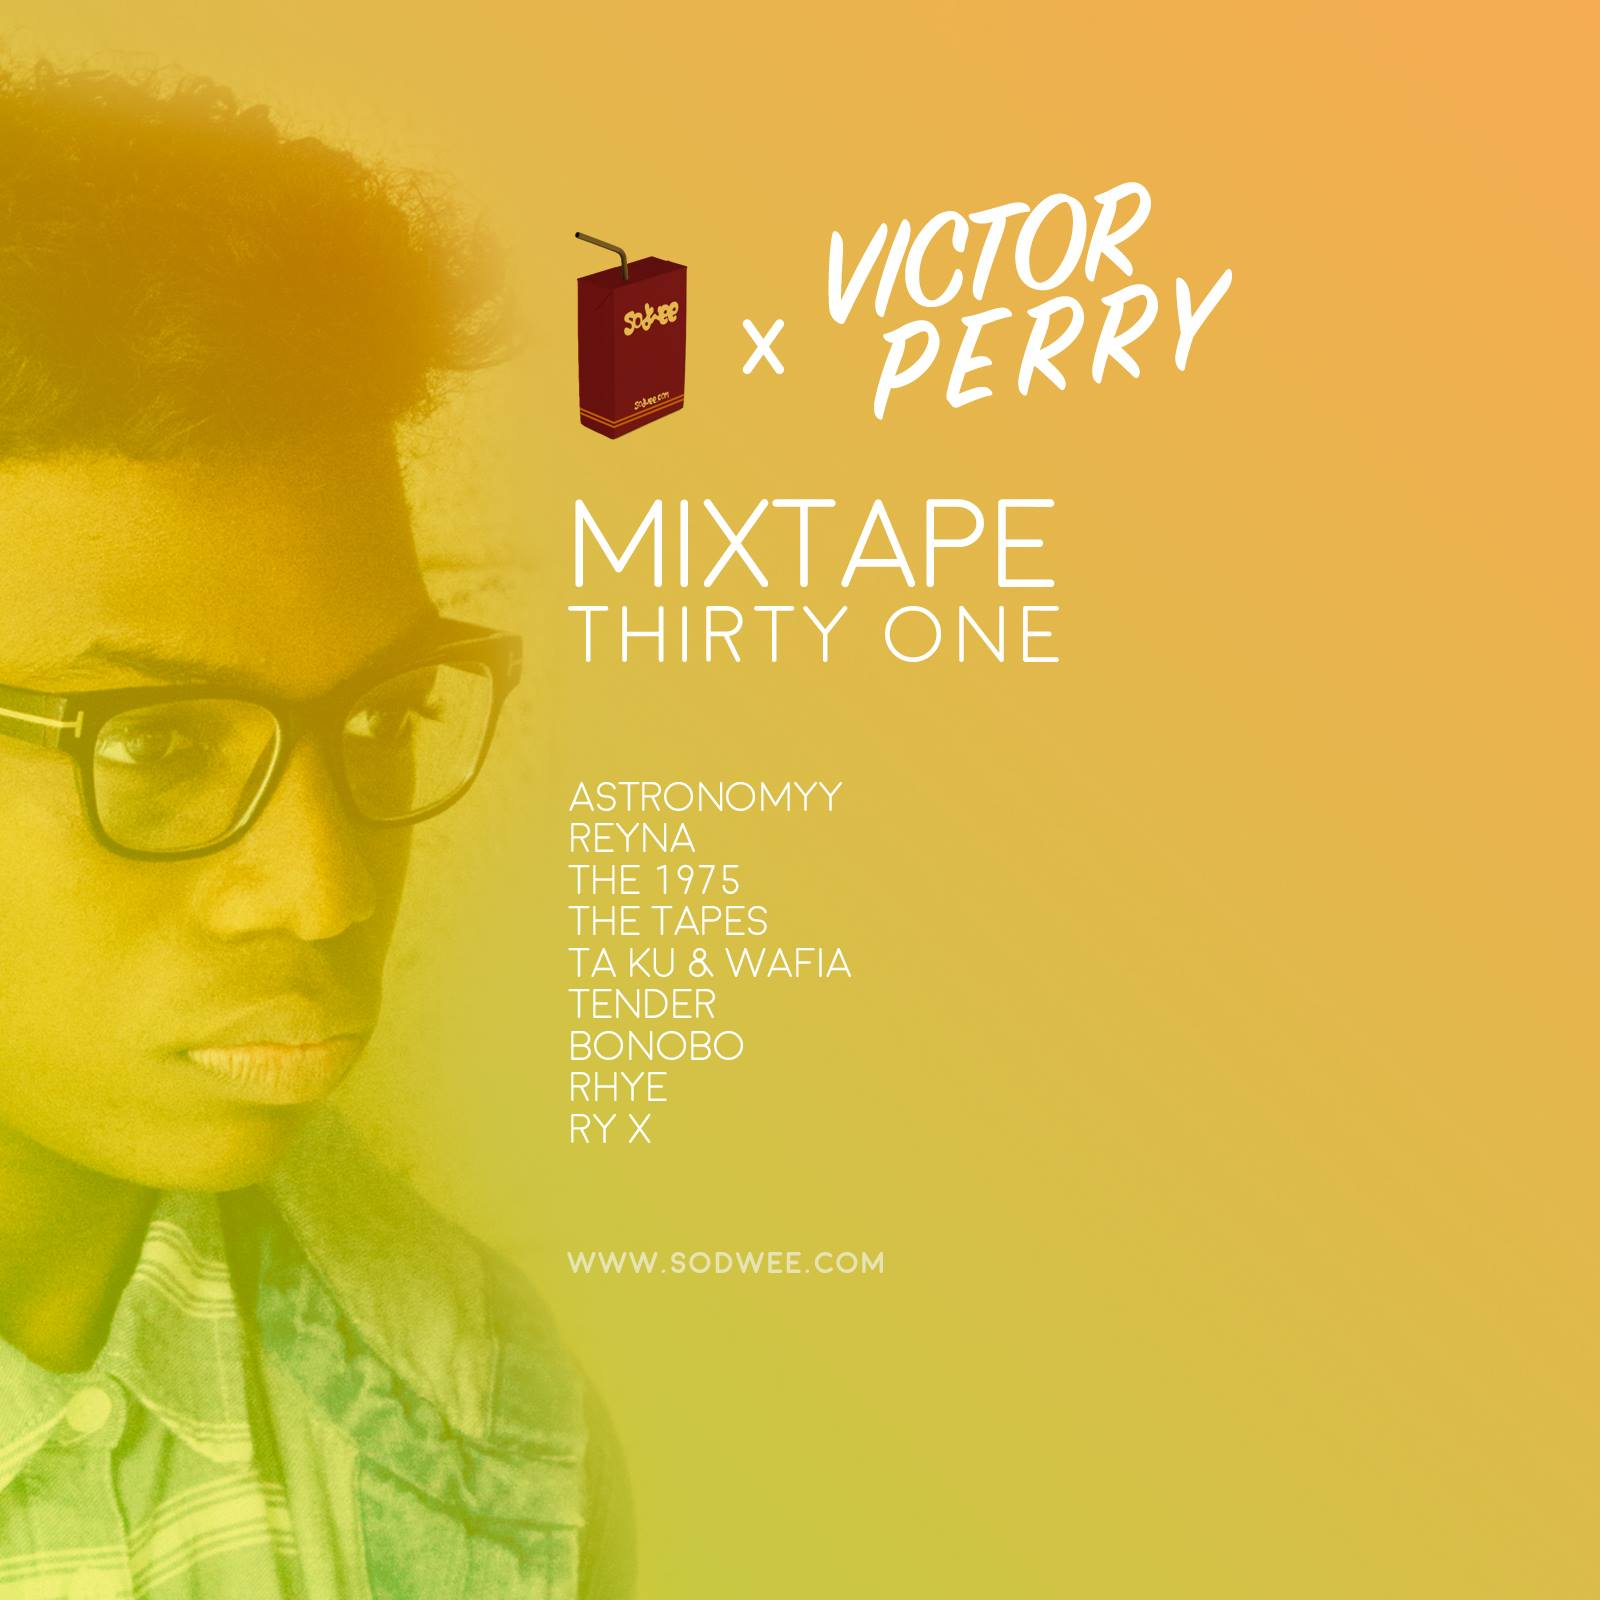 https://www.mixcloud.com/Sodwee/mixtape-thirty-one-by-victor-perry